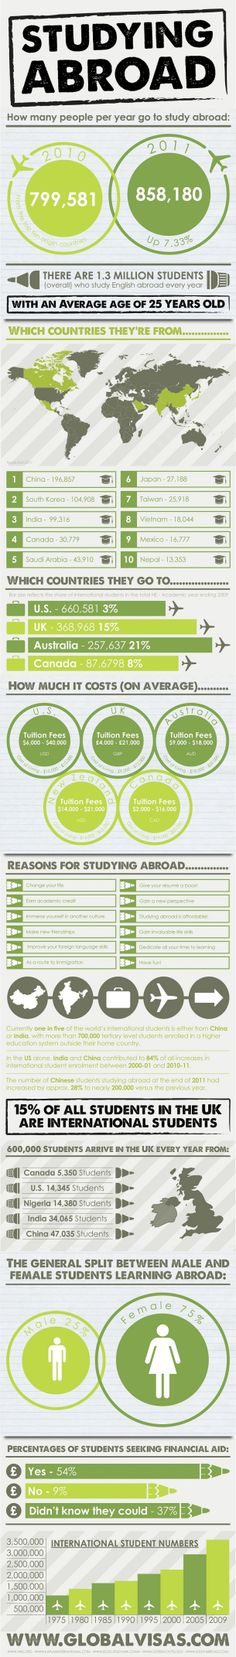 #Studying Abroad by the numbers. Travelling to #study in #college or #university is a great experience and learning curve!